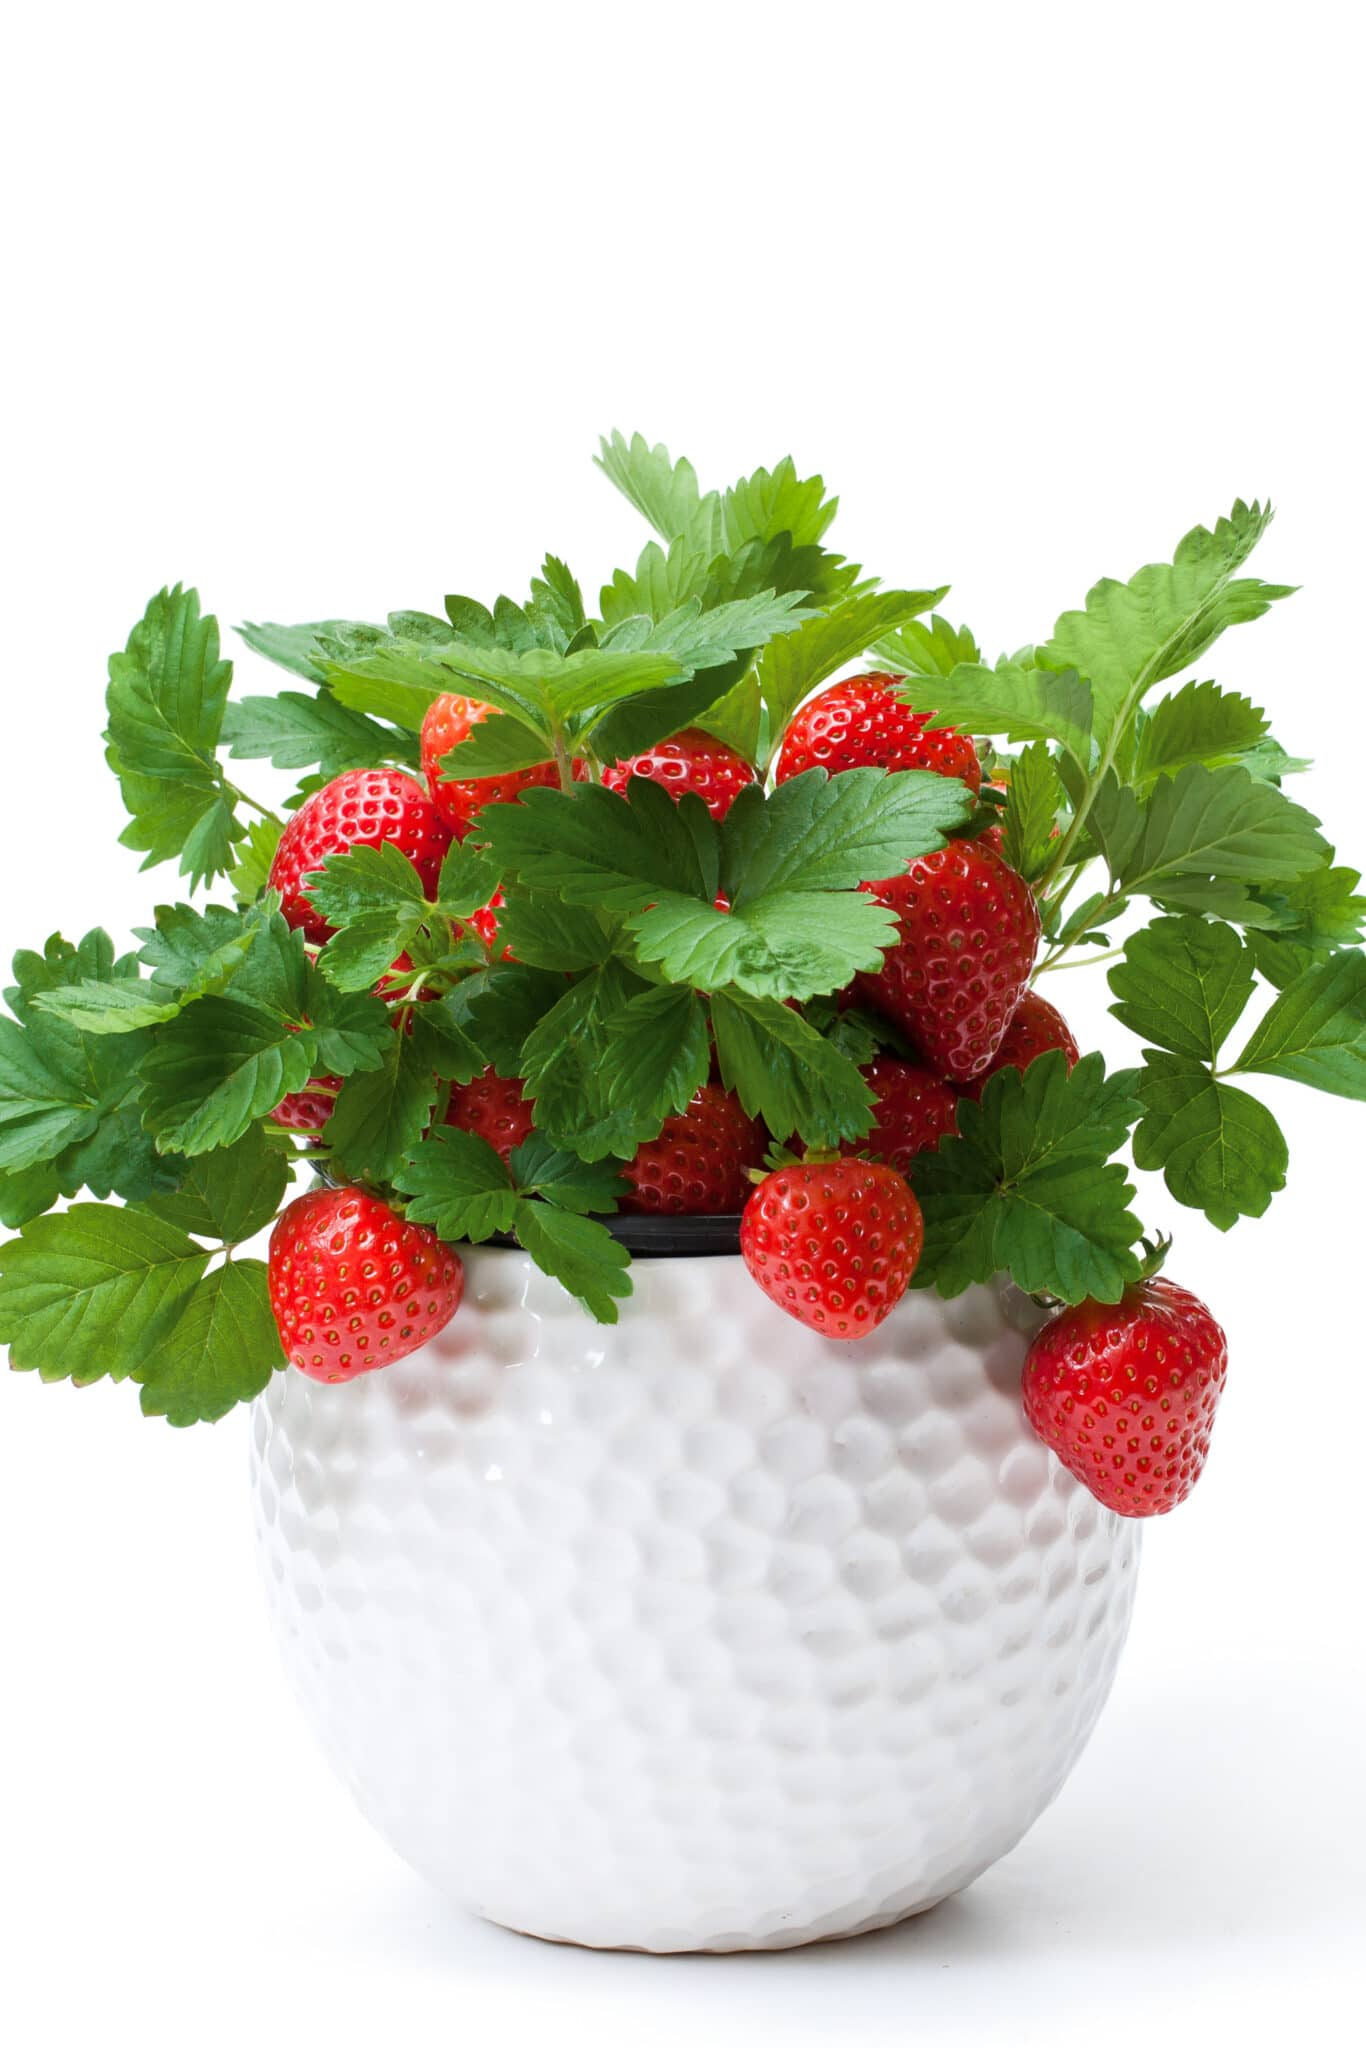 White dimpled ceramic planter with healthy strawberry plants with bright red ripe strawberries filling the pot.